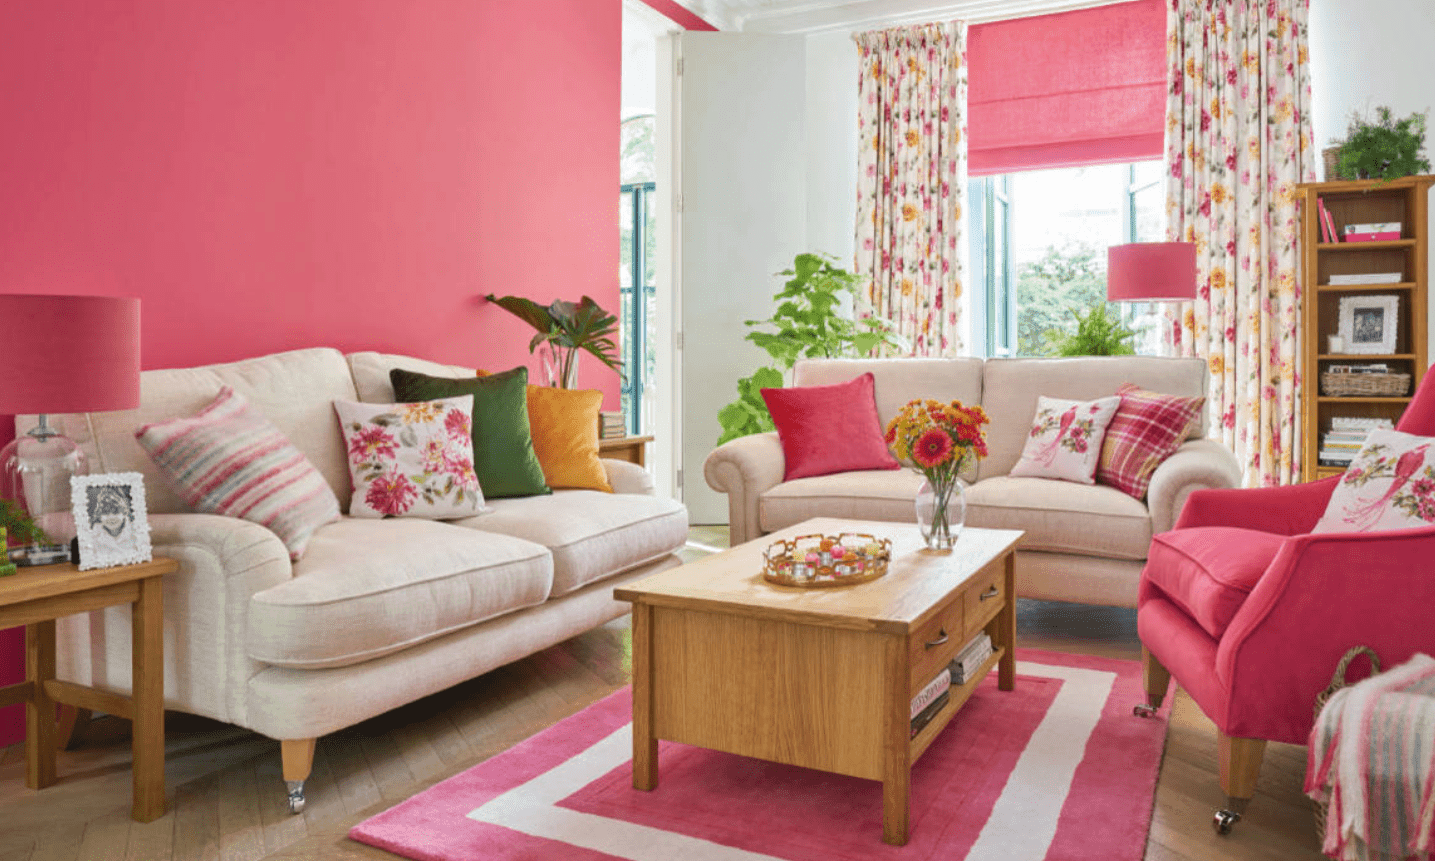 25 Pink Living Room Ideas (Photos)